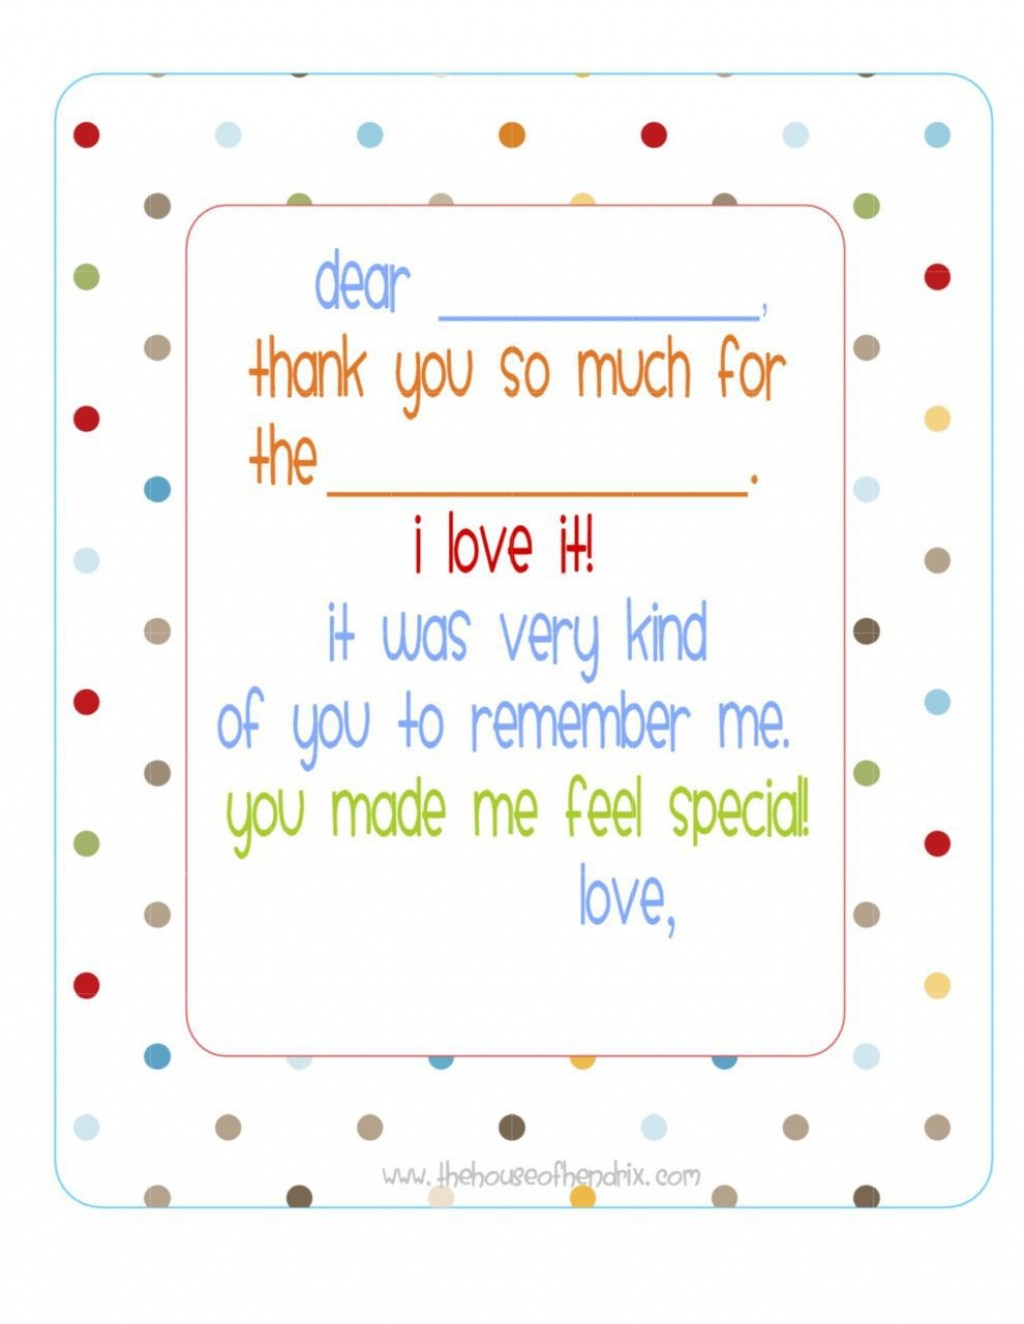 004 Fascinating Thank You Note Template For Kid High Def  Kids Child Pdf LetterLarge